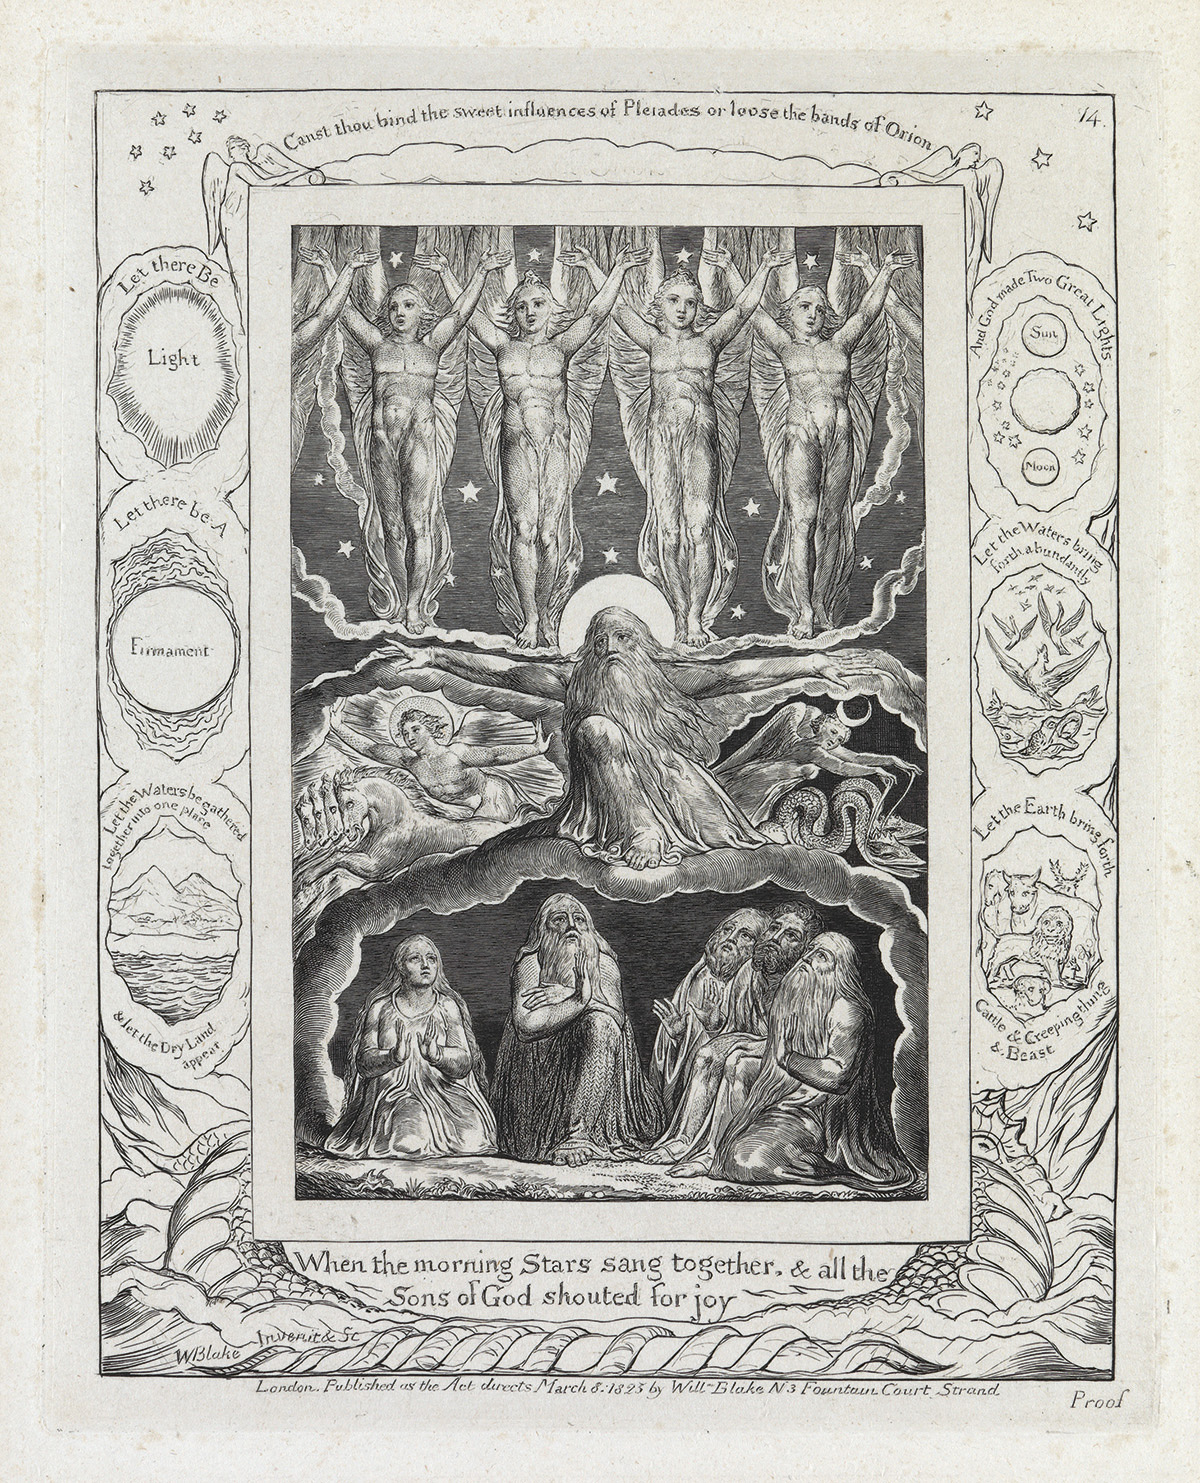 WILLIAM BLAKE When the Morning Stars Sang Together & All the Sons of God Shouted for Joy.